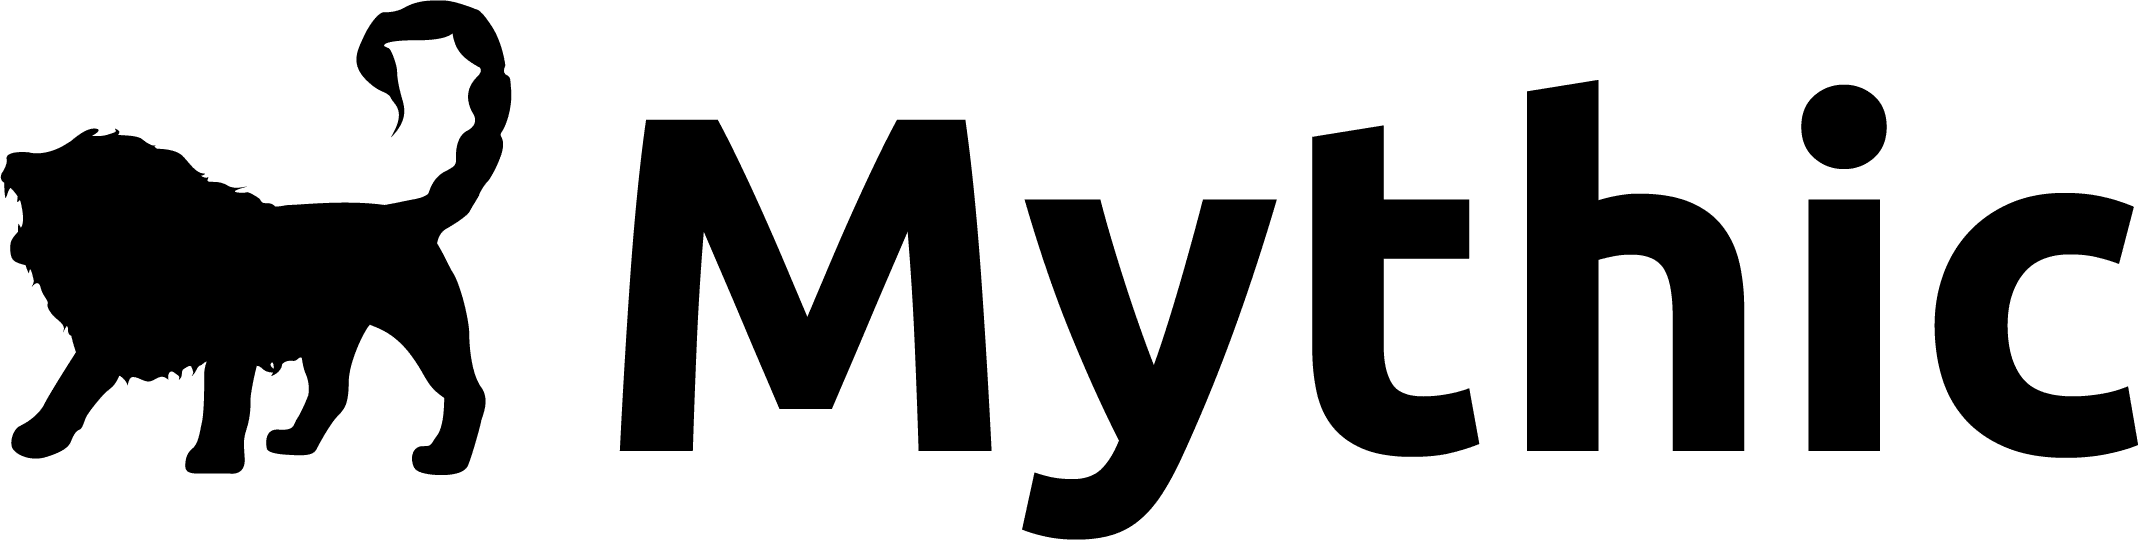 Mythic Design Company